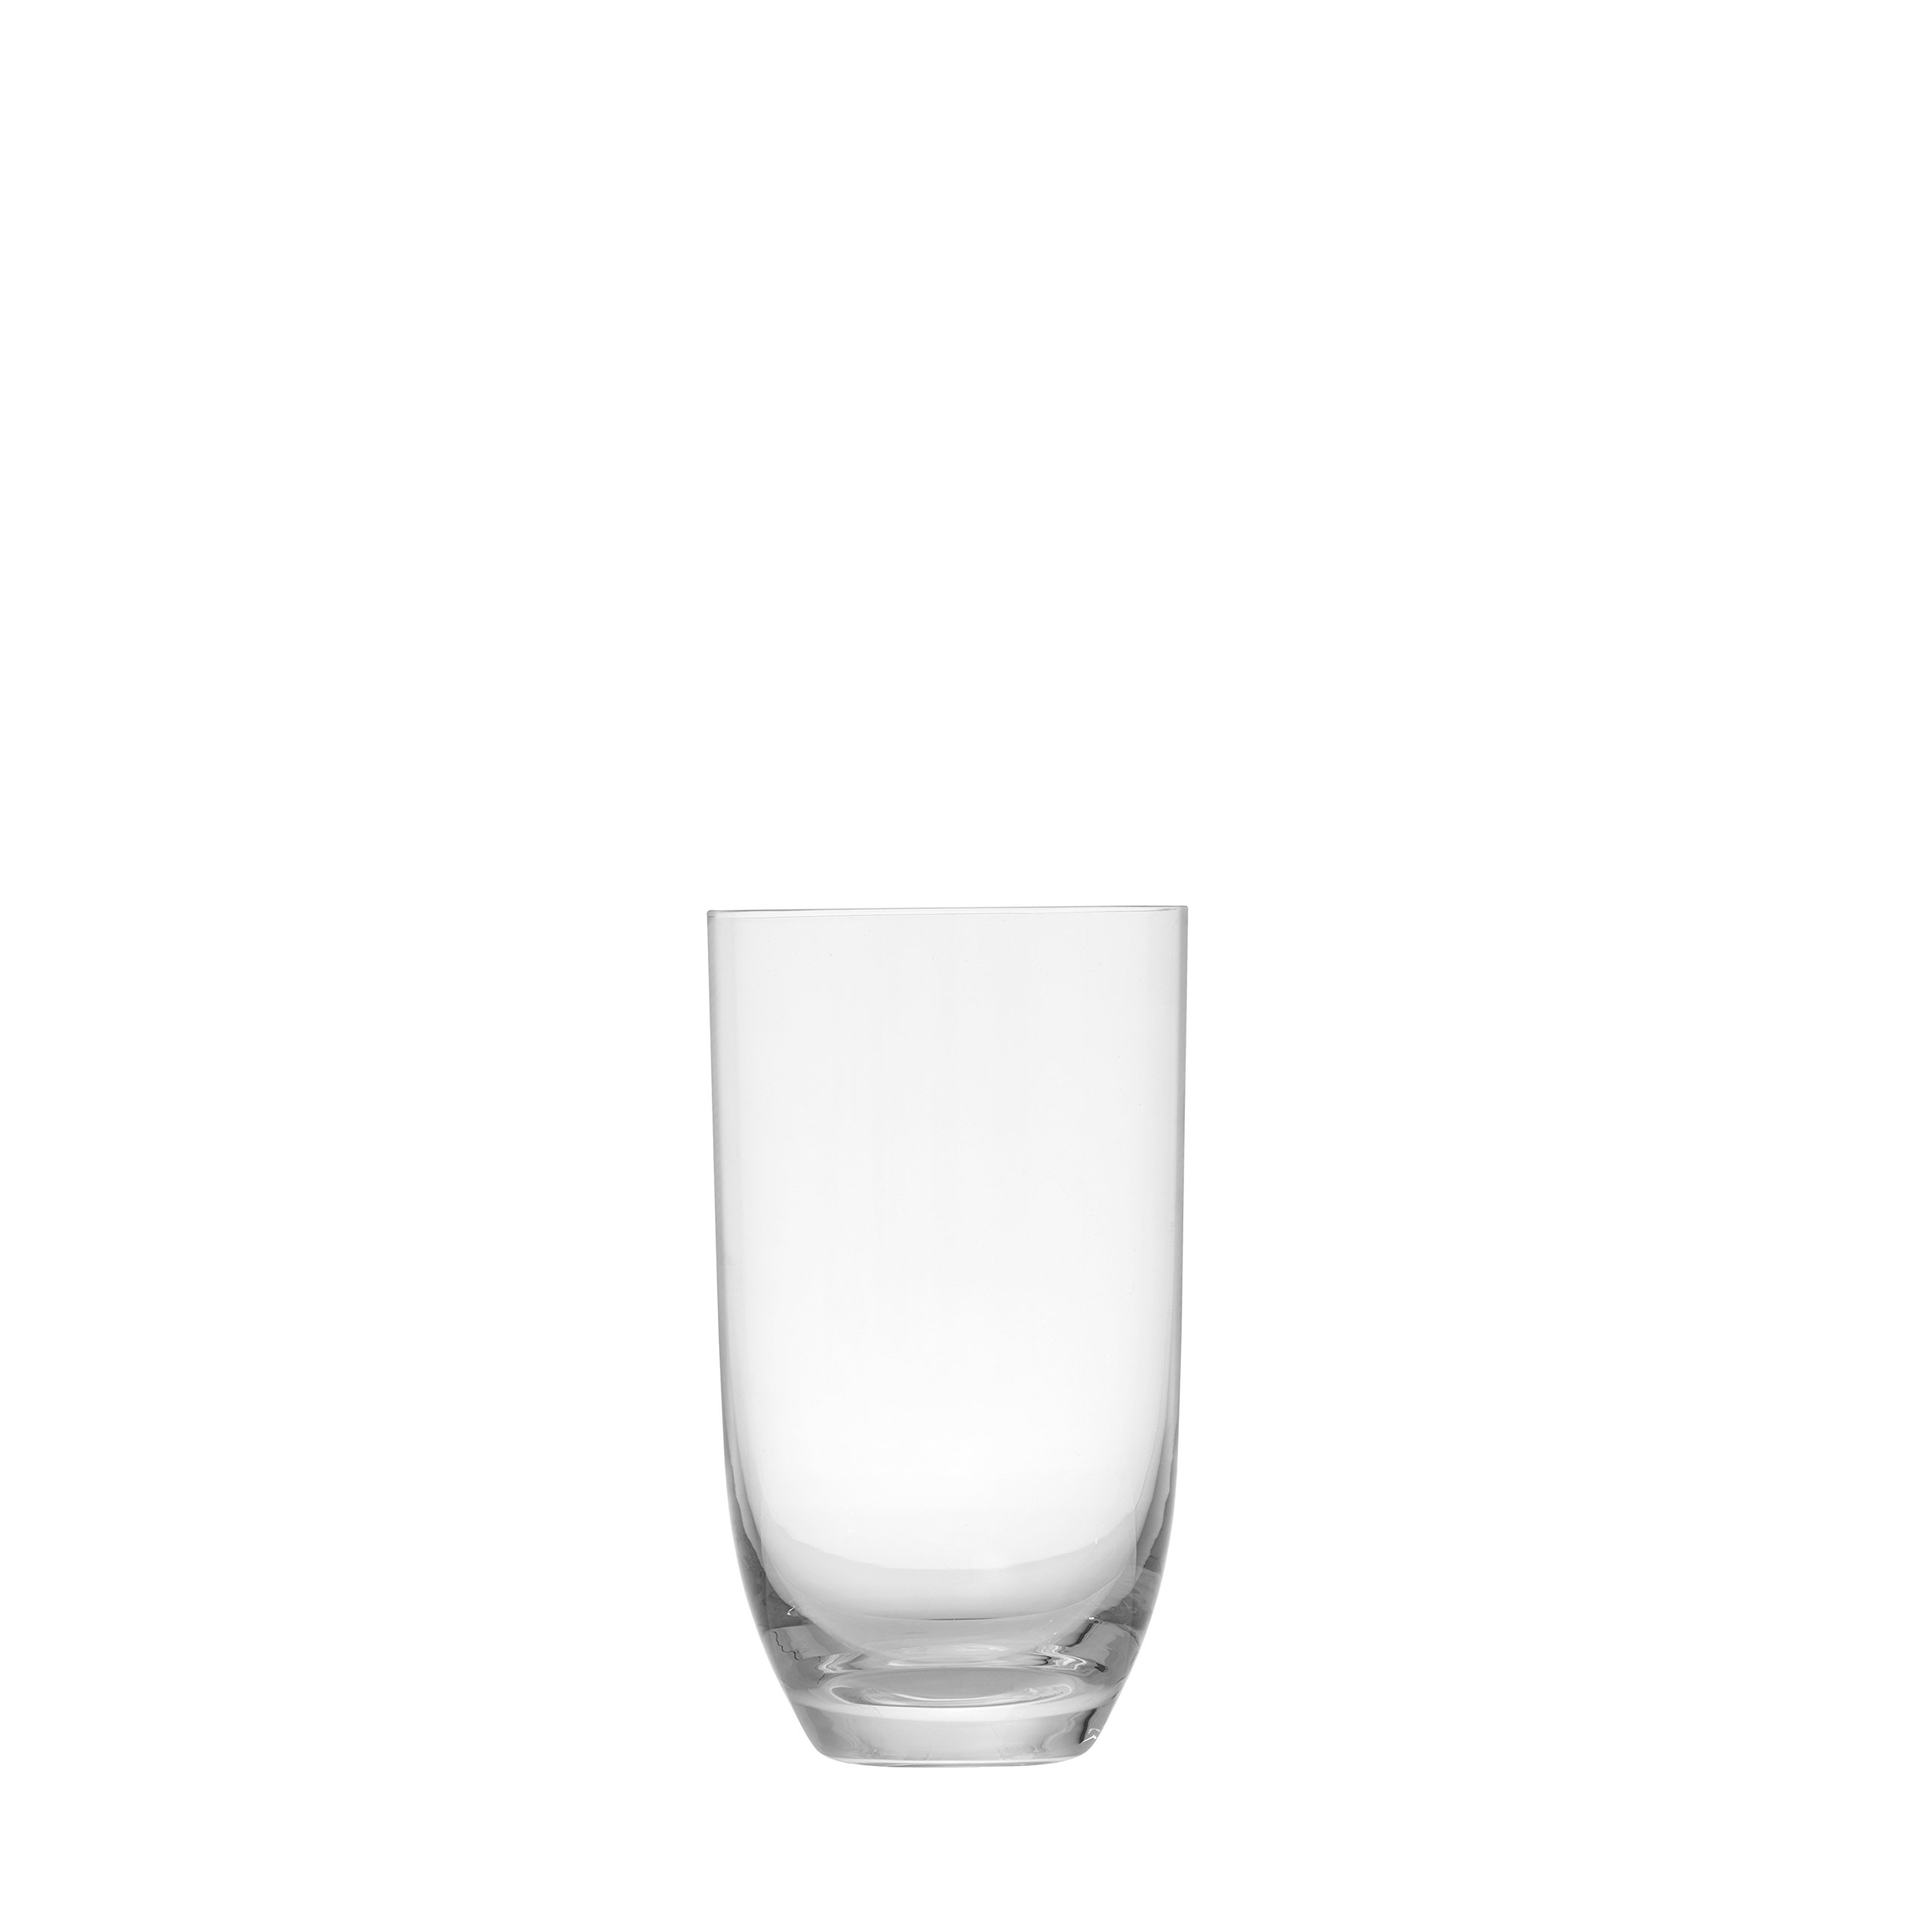 Schott Zwiesel Tritan Crystal Glass Audrey Barware Long Drink/Collins Glass, 17-Ounce, Set of 6